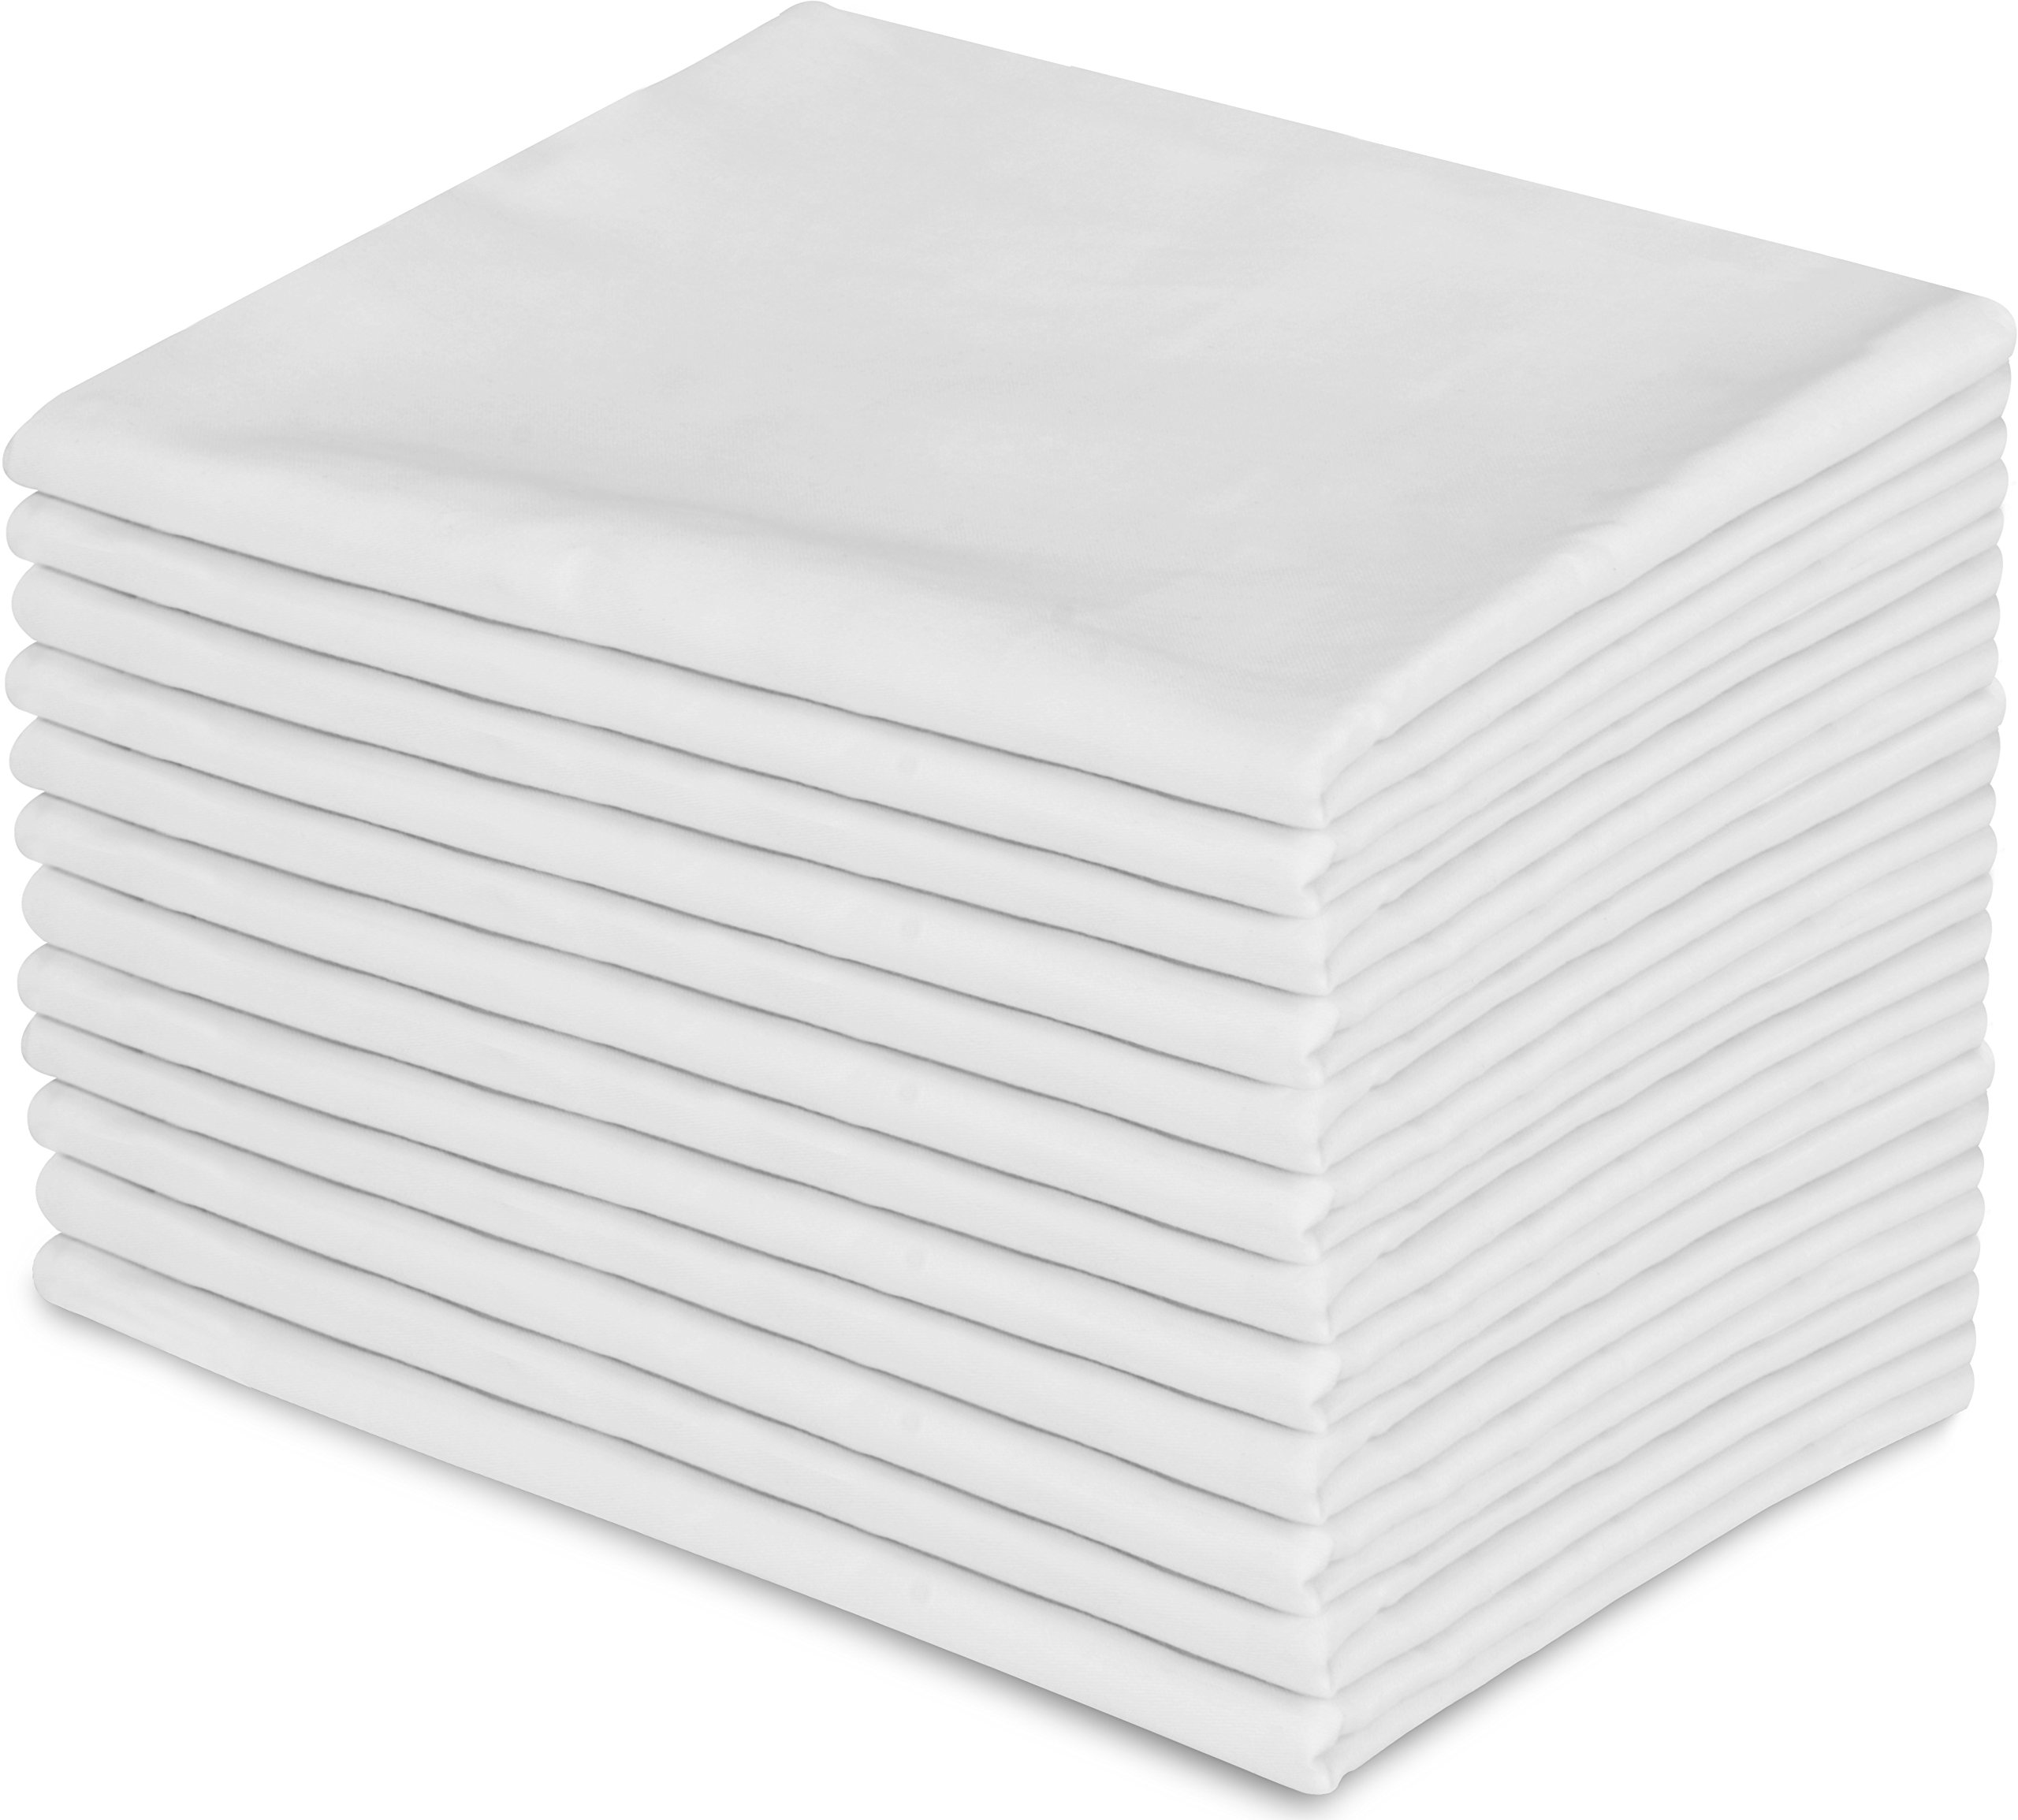 Utopia Bedding 12 Pillowcases - Queen White - Brushed Microfiber - Maximum Softness - Elegant Double-Stitched Tailoring - Reduces Allergies and Respiratory Irritation - Set of Dozen Pillowcases